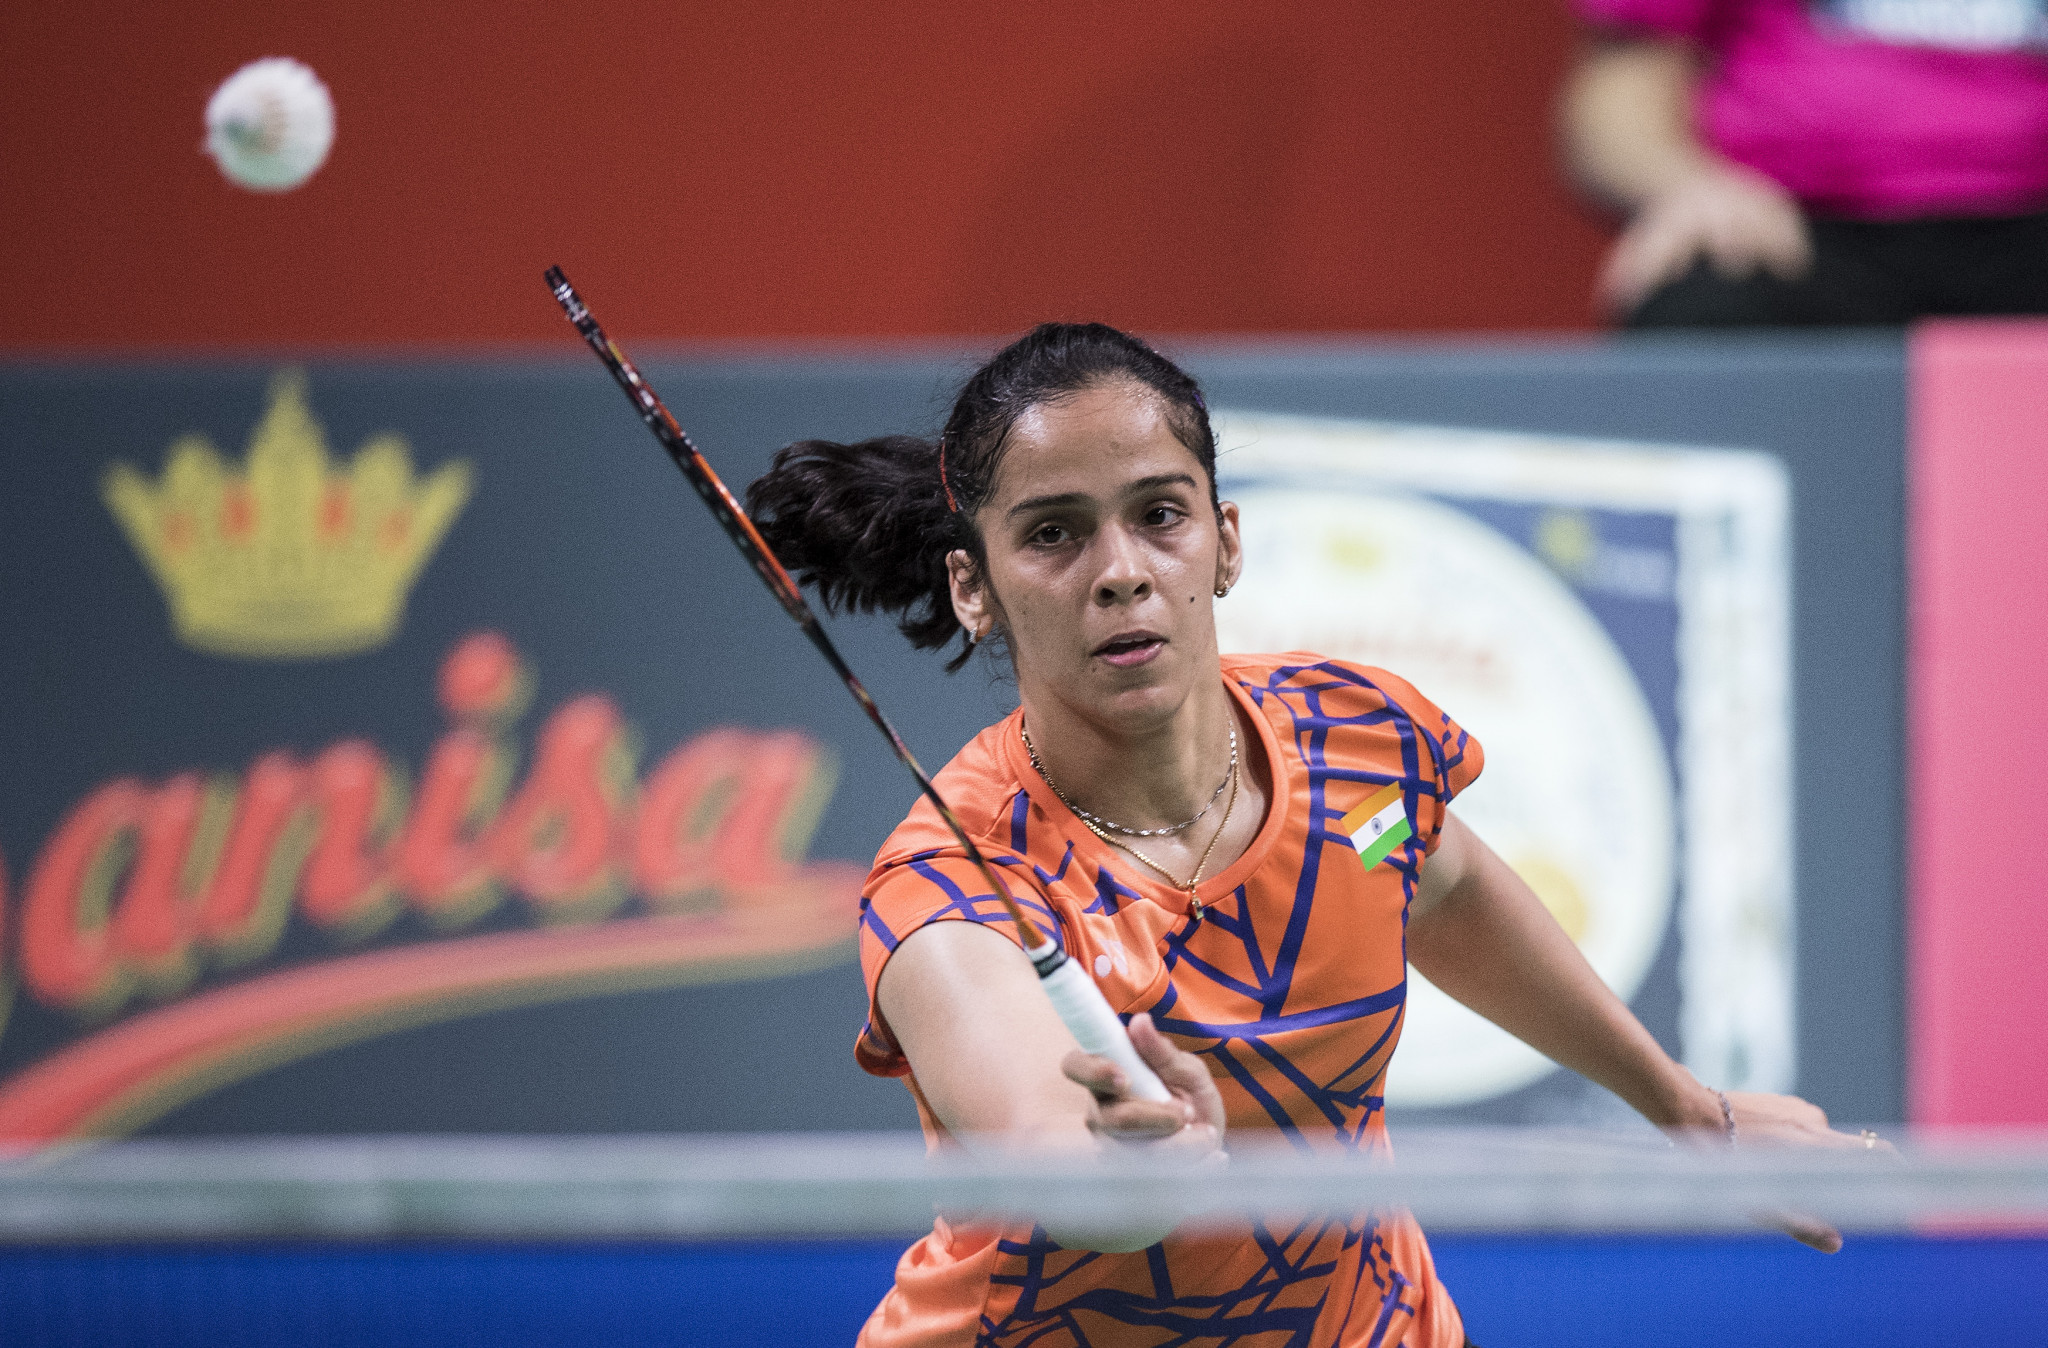 Home players march on at BWF Syed Modi International in India